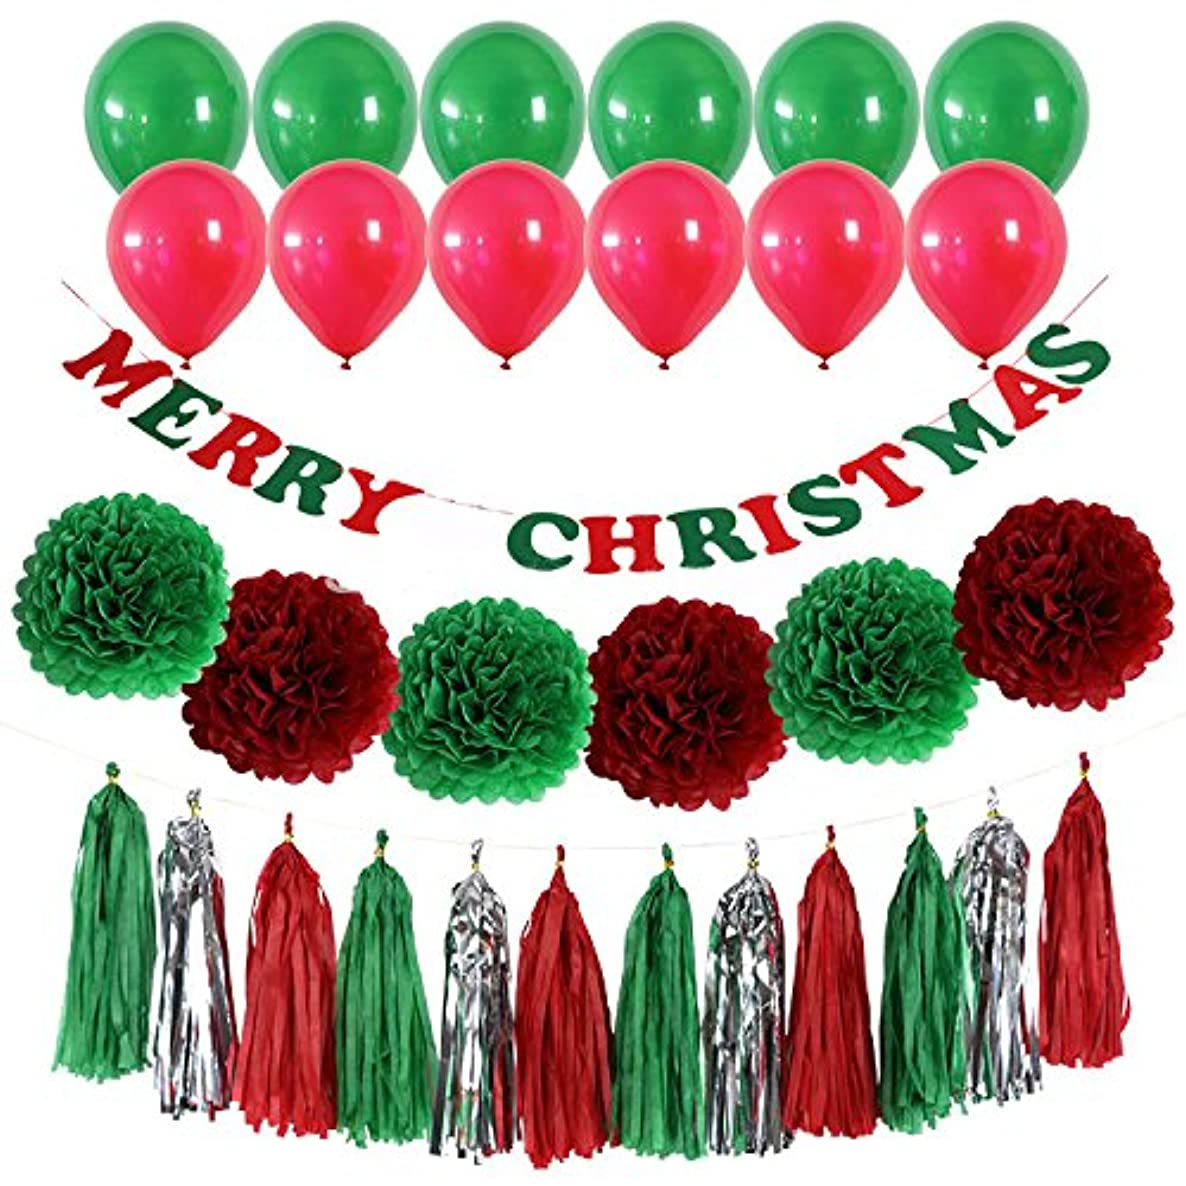 42PCS Merry Christmas Banner Kit - Christmas Party Decorations - 10 Balloons, 6 Pompom Flower Tissue Paper and 15 Paper tassel, Xmas Day Decor Supplies for Christmas Party Home Tree Decorations